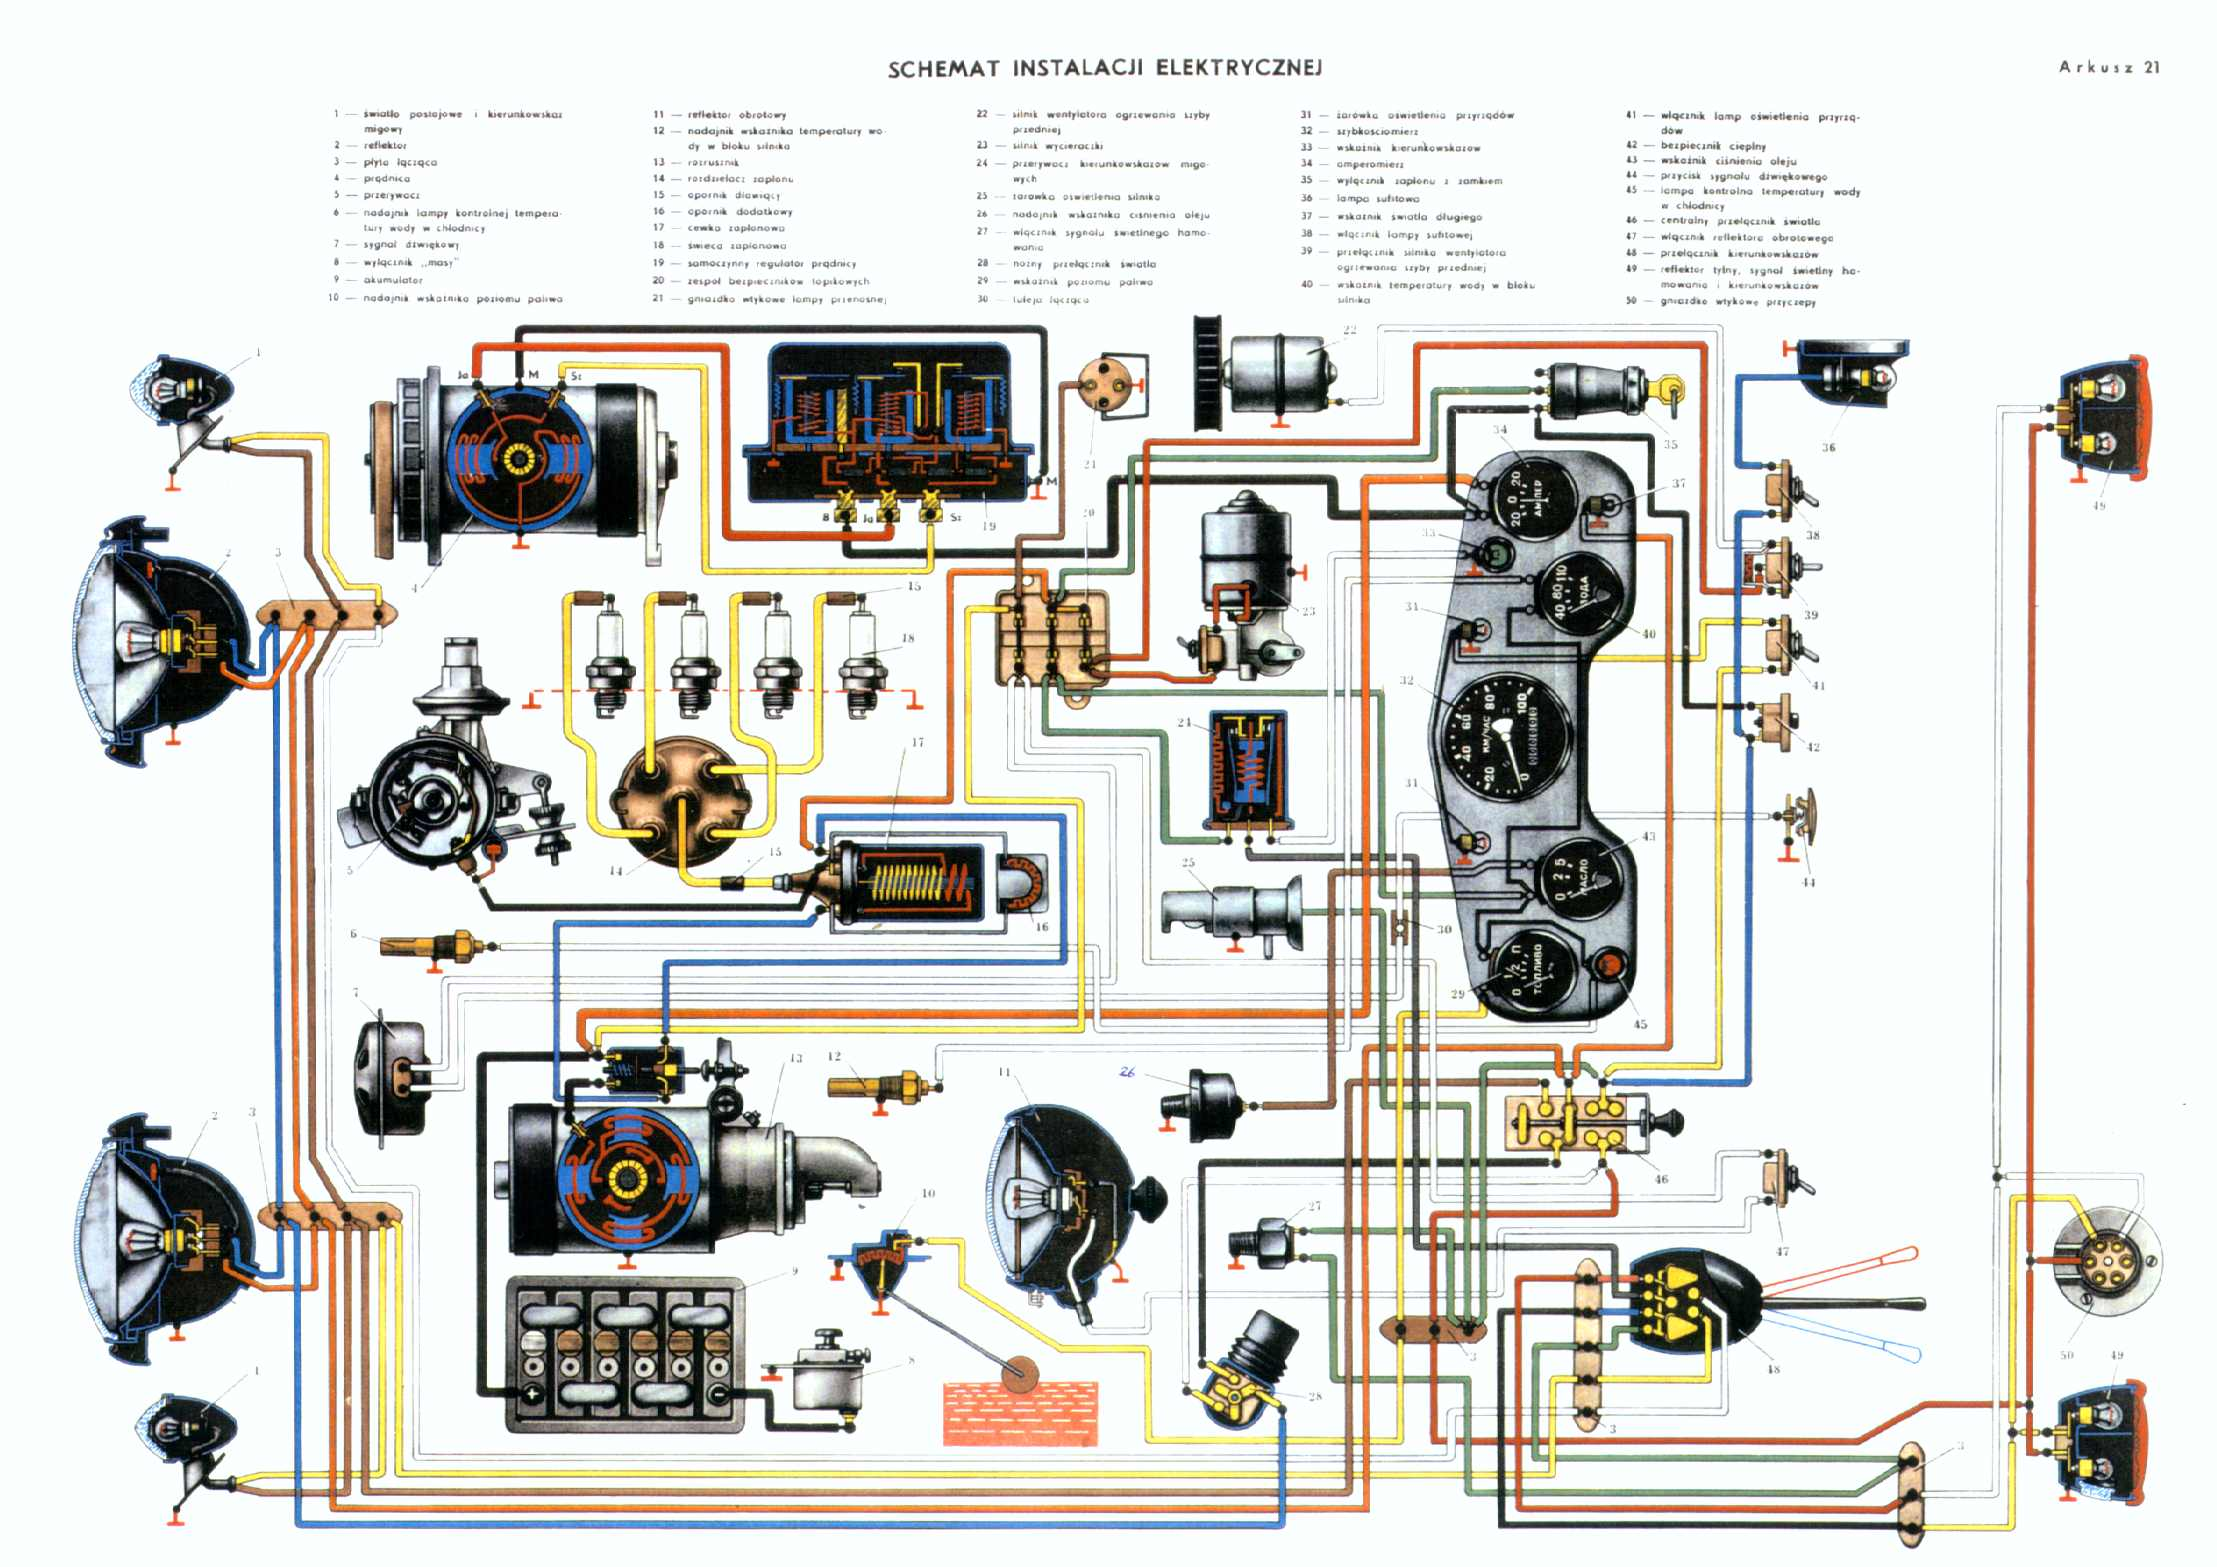 616 2000 drive assembly moreover Steering Column Parts Diagram furthermore Front End Loader Parts Diagram likewise Kioti Tractor Parts Diagram likewise Fuel System Schematic Diagrams. on mahindra wiring diagrams